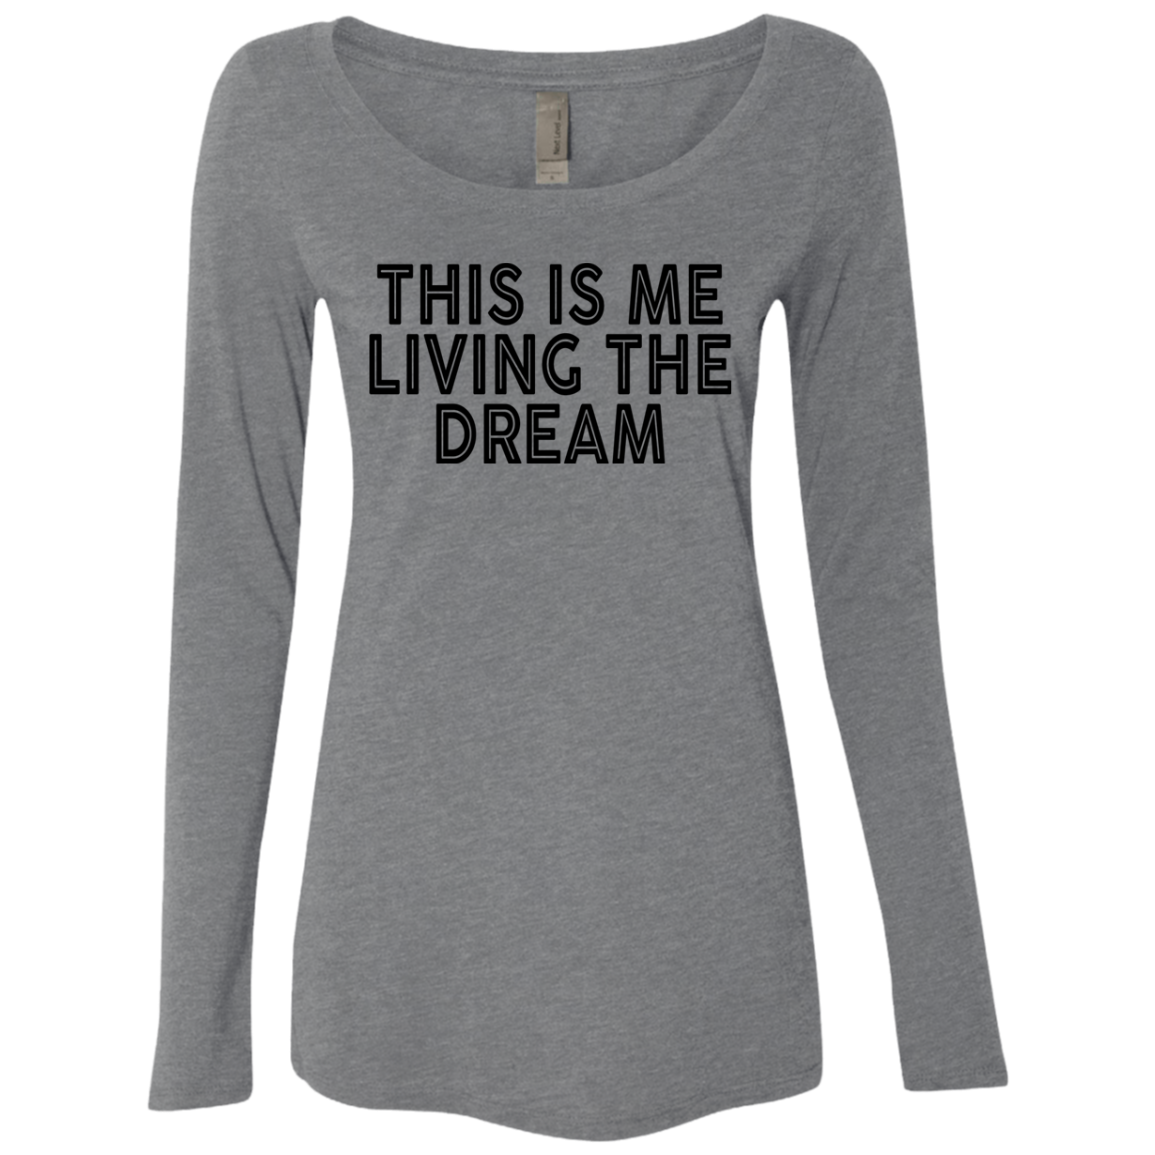 This Is Me Living The Dream Women's Long Sleeve Tee